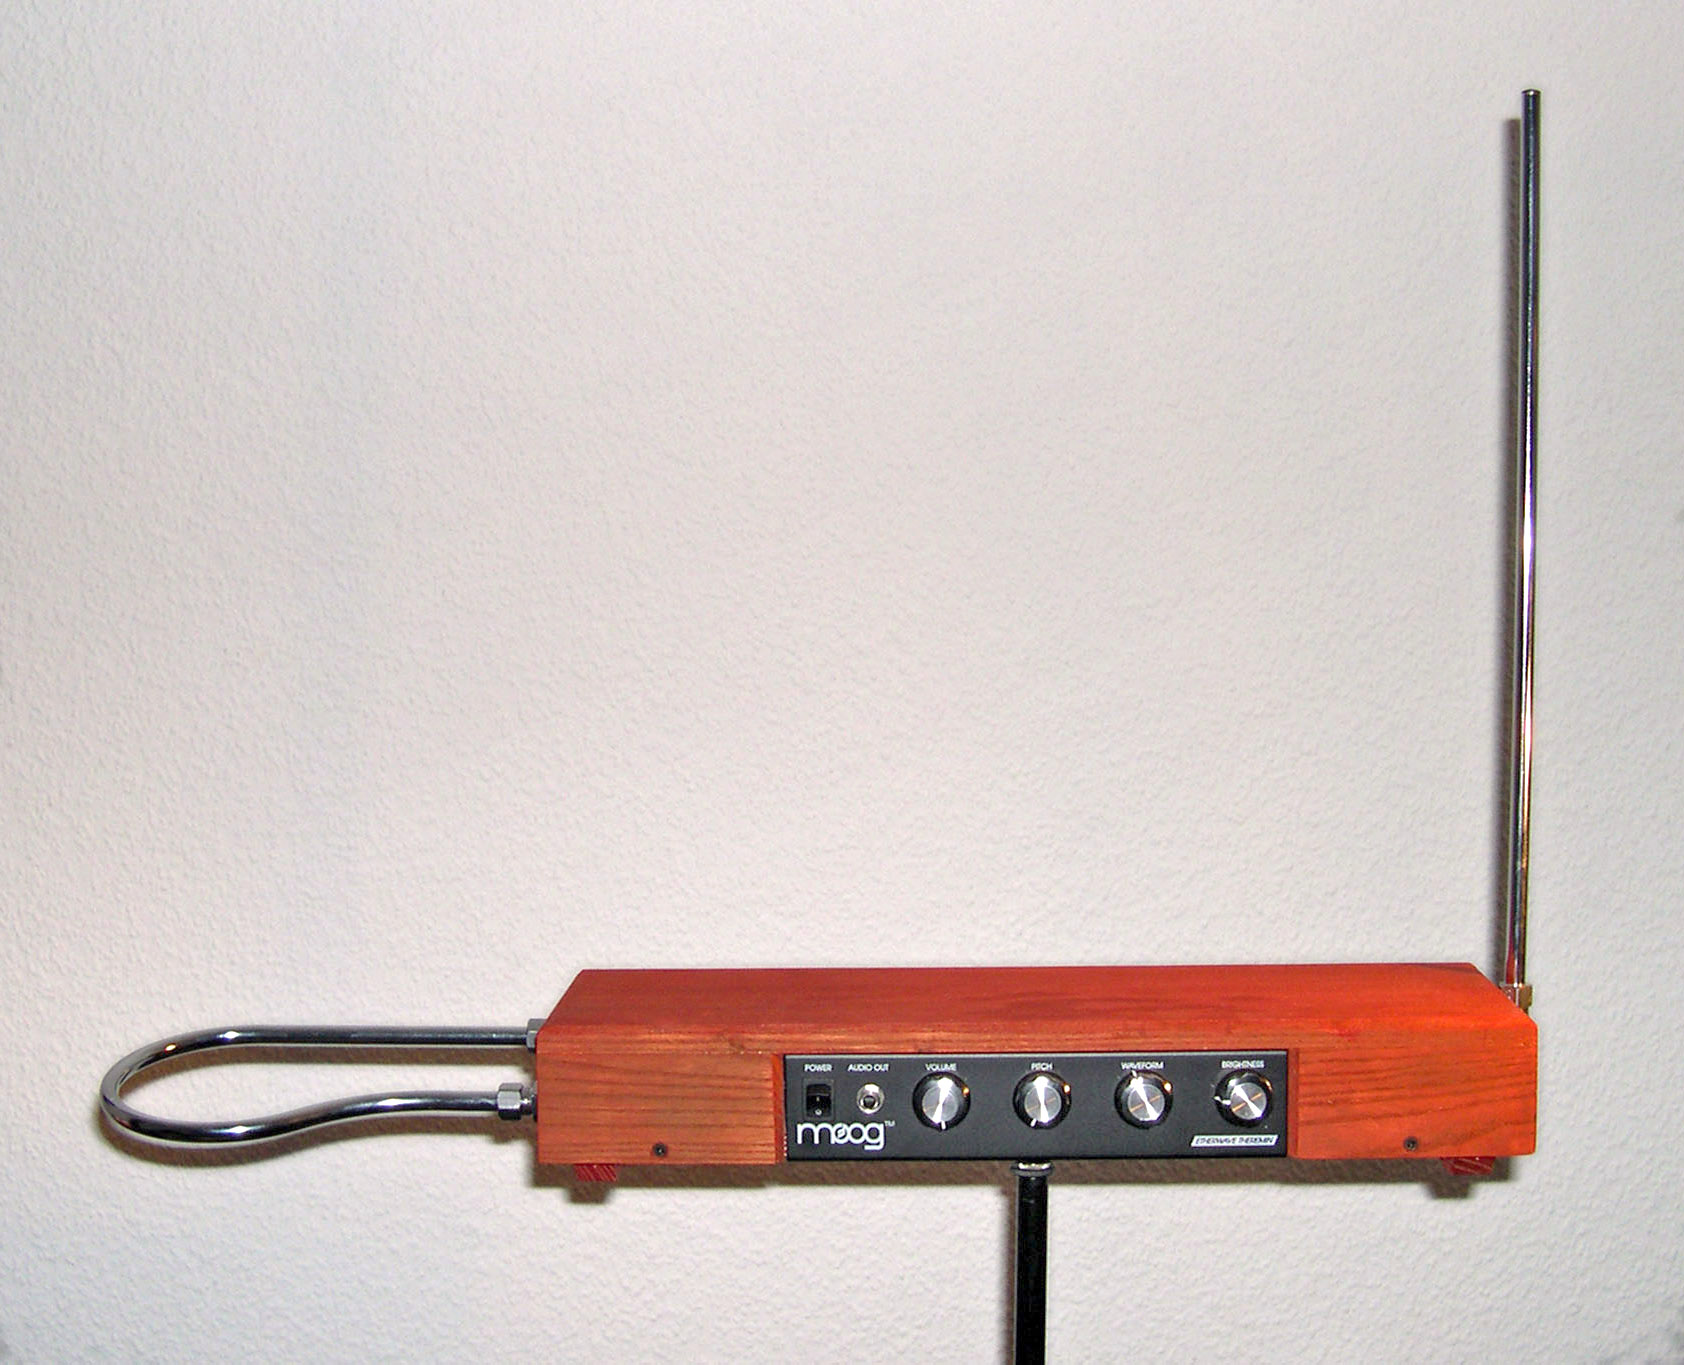 http://commons.wikipedia.org/wiki/File:Etherwave_Theremin_Kit.jpg